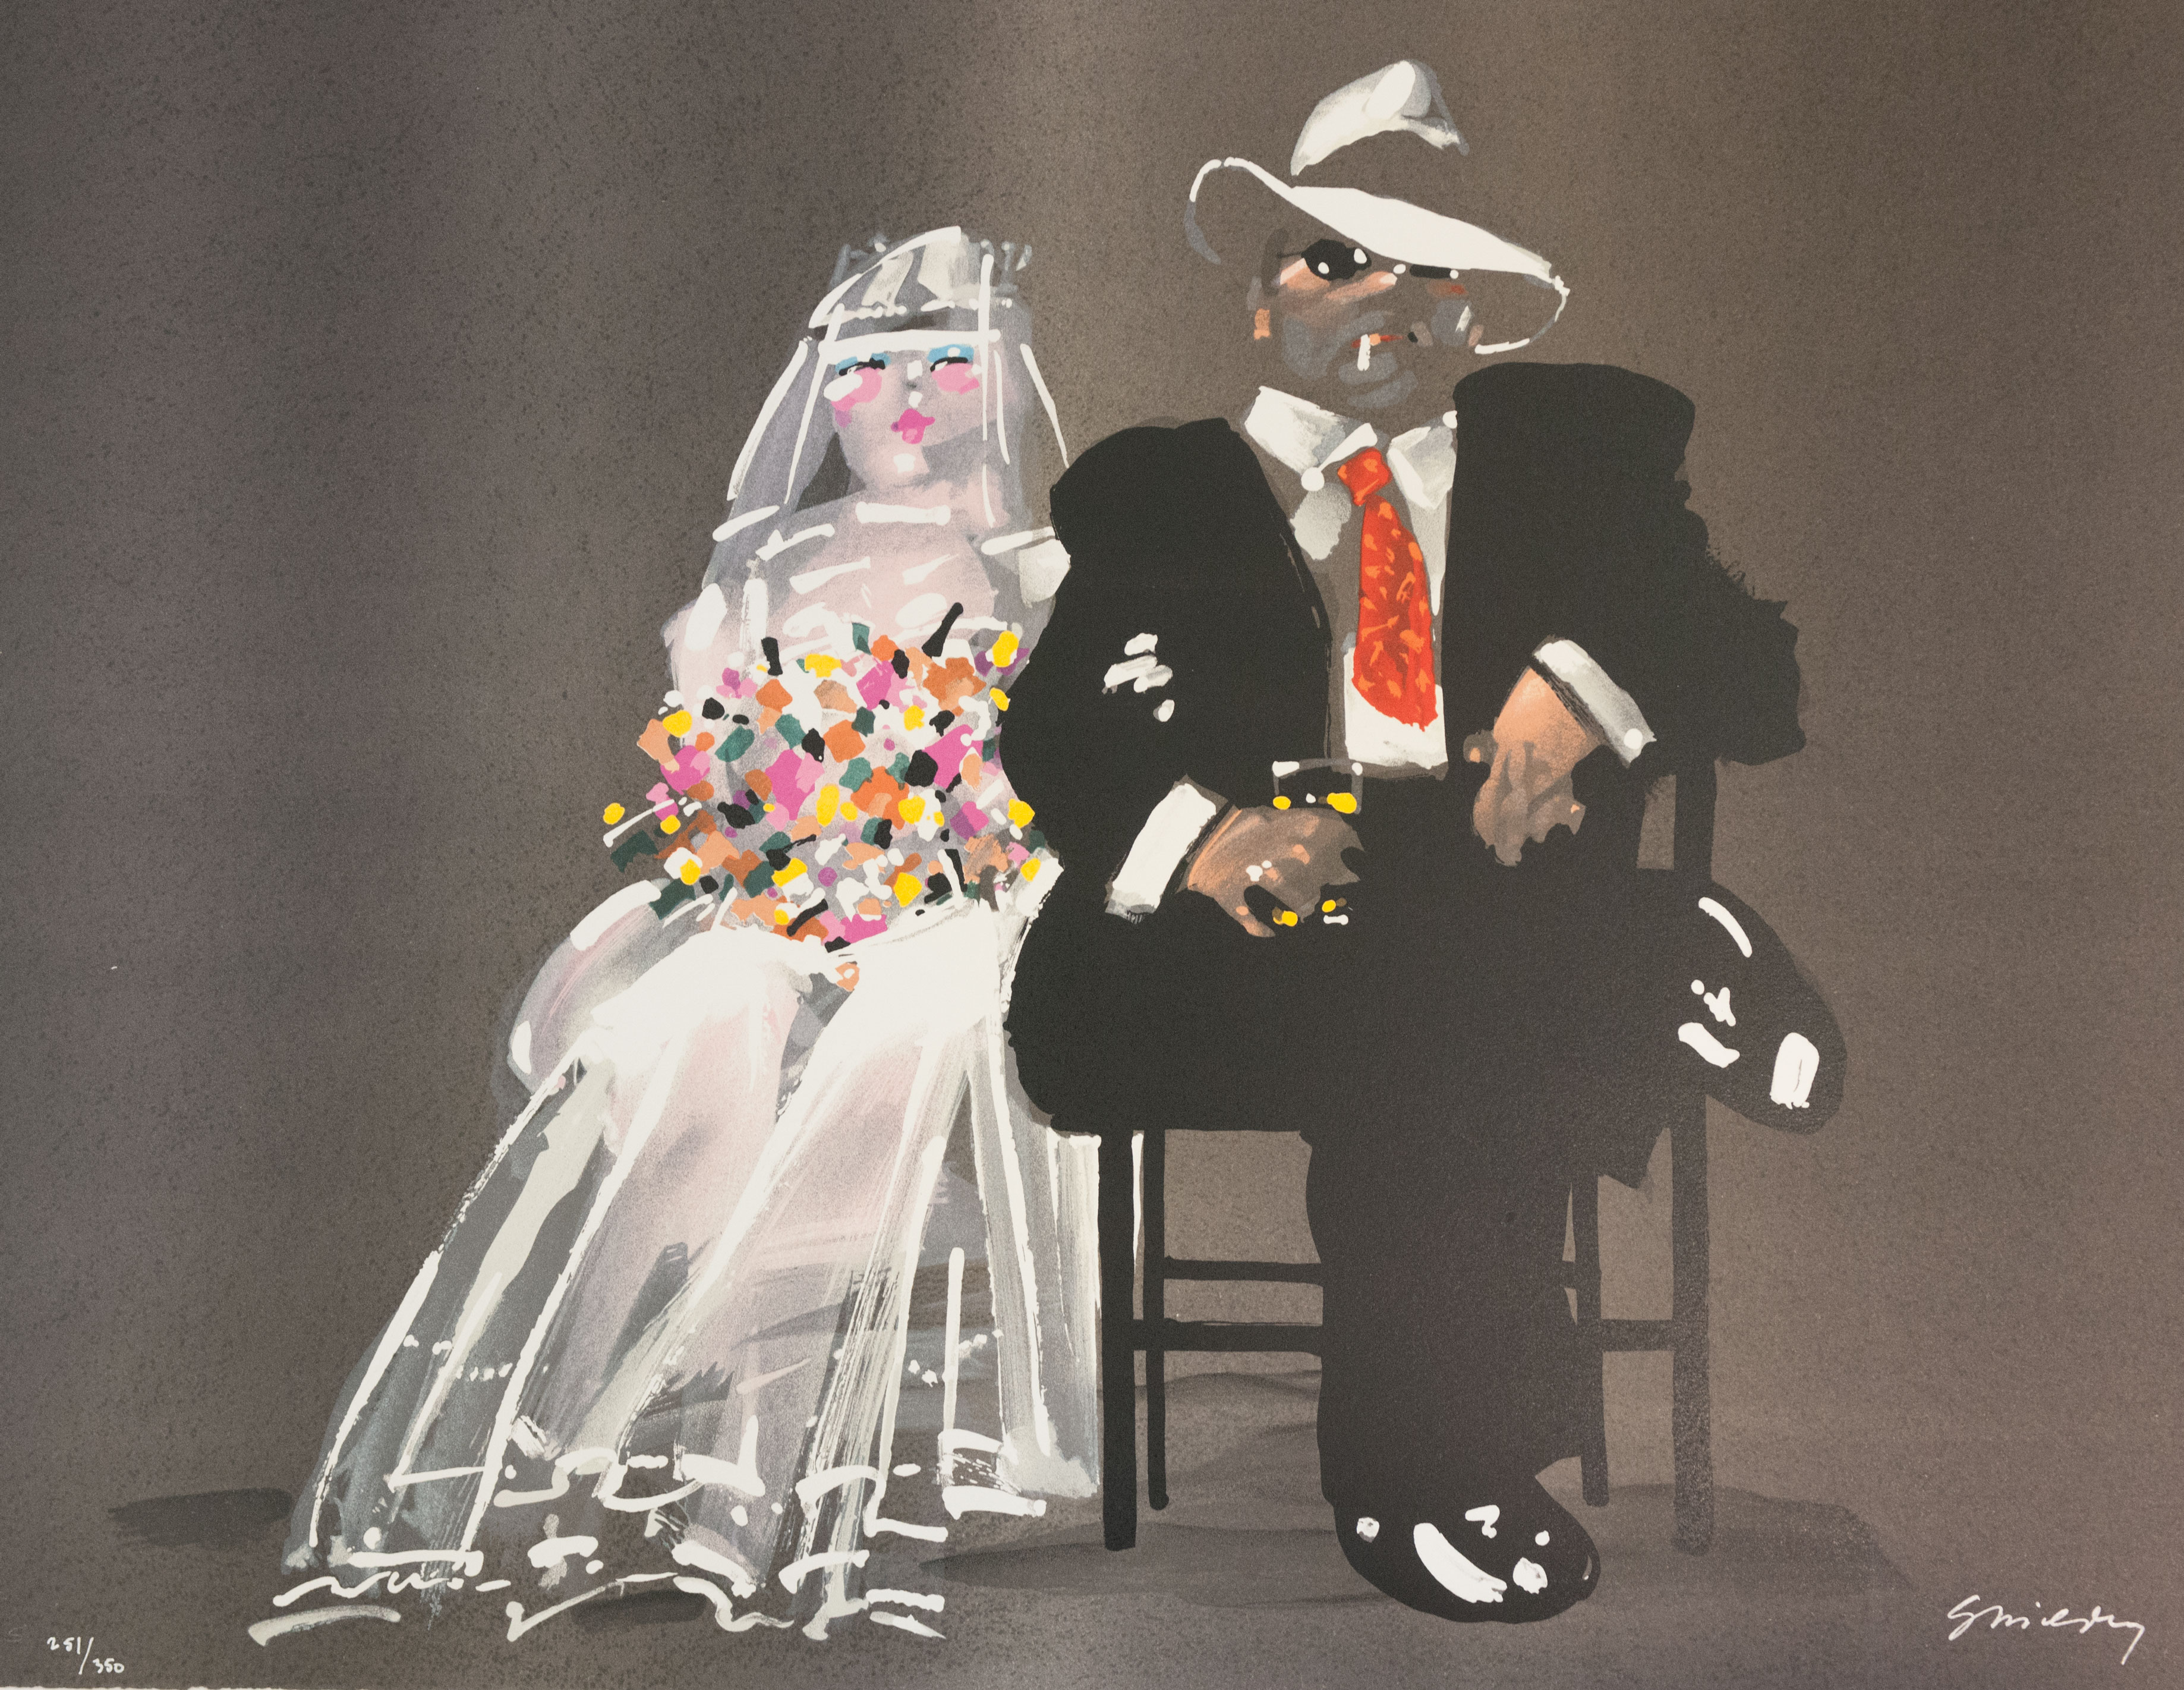 Waldemar Swierzy gangster art wedding bride fine art lithograph white dress wedding bouquet cocktail